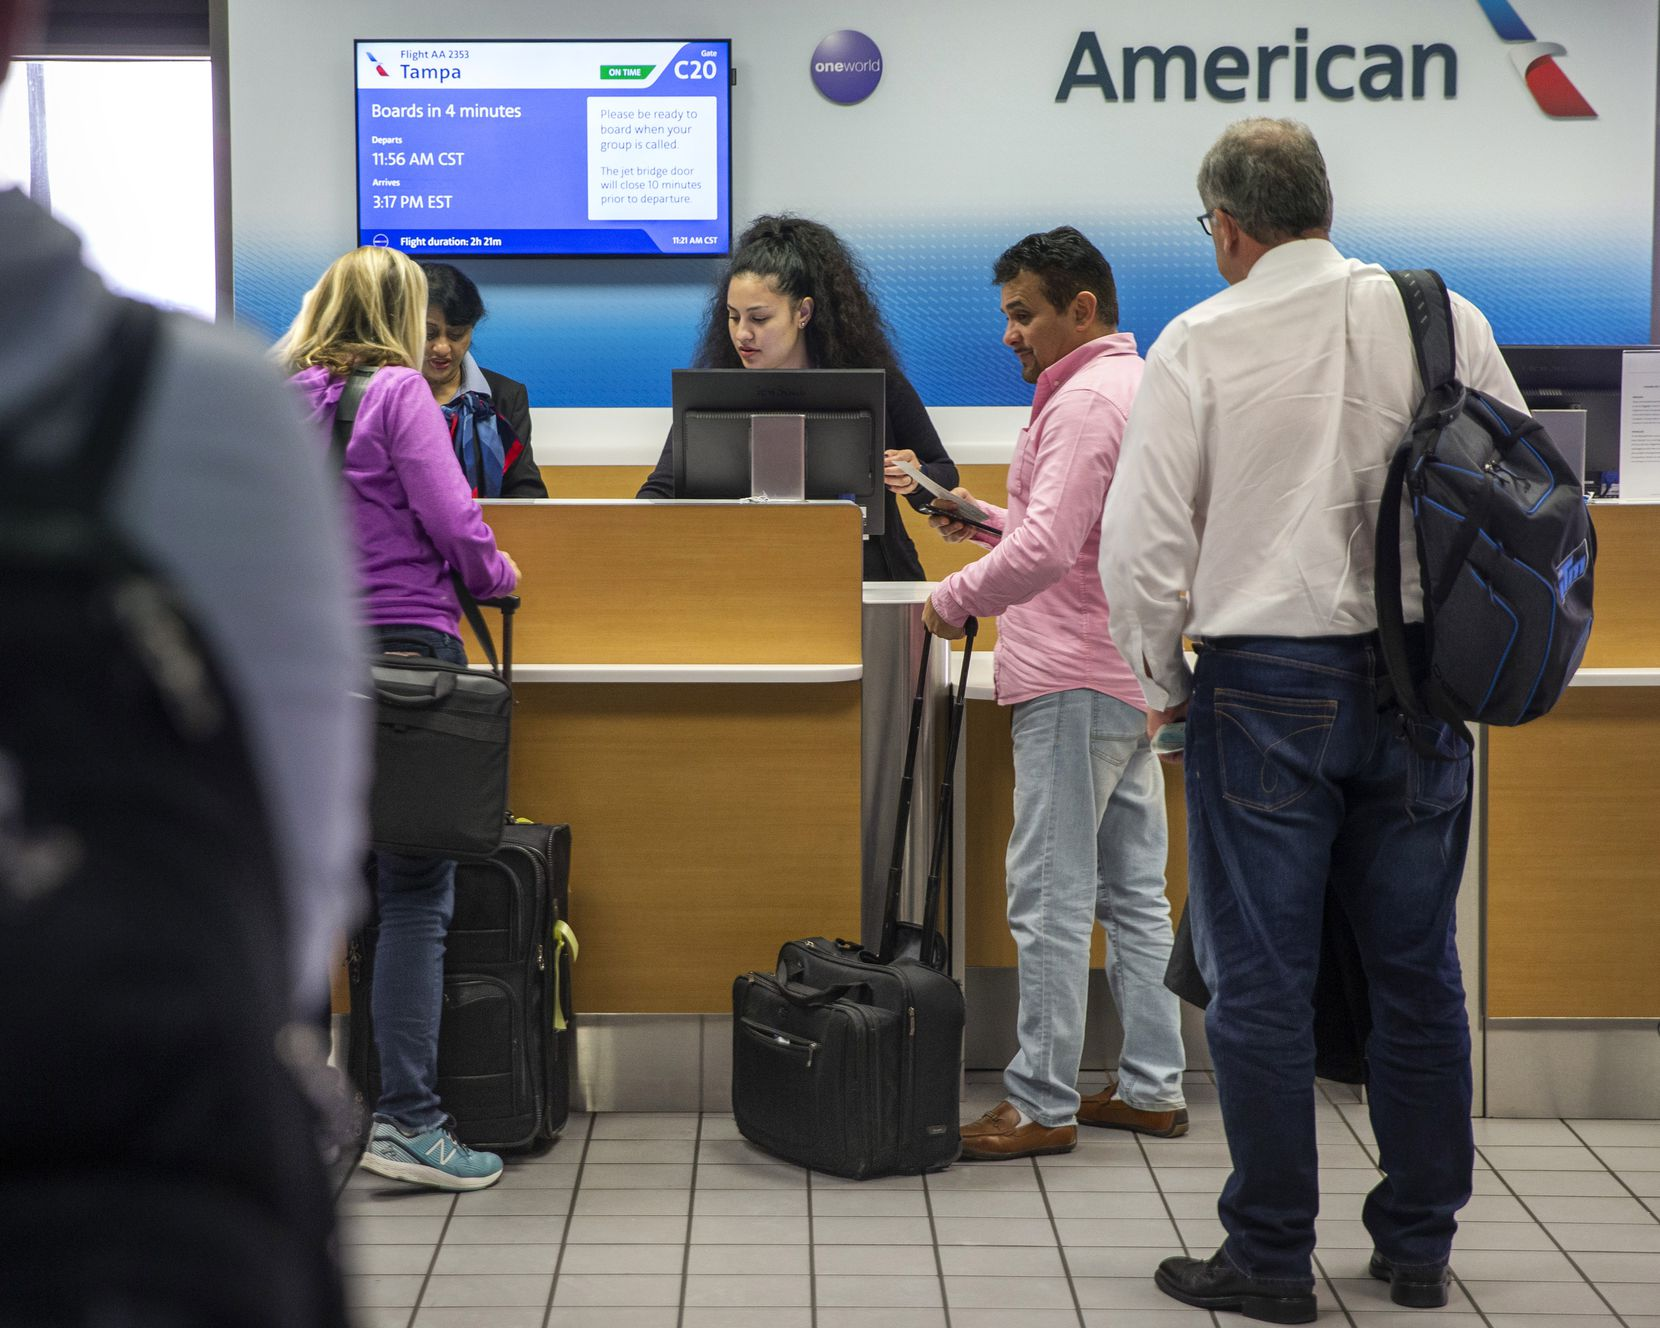 Passengers line up at an American Airlines ticket counter at DFW International Airport in Irving on Nov. 22, 2019. American Airlines is bumping passengers from overbooked flights at an industry-leading rate.